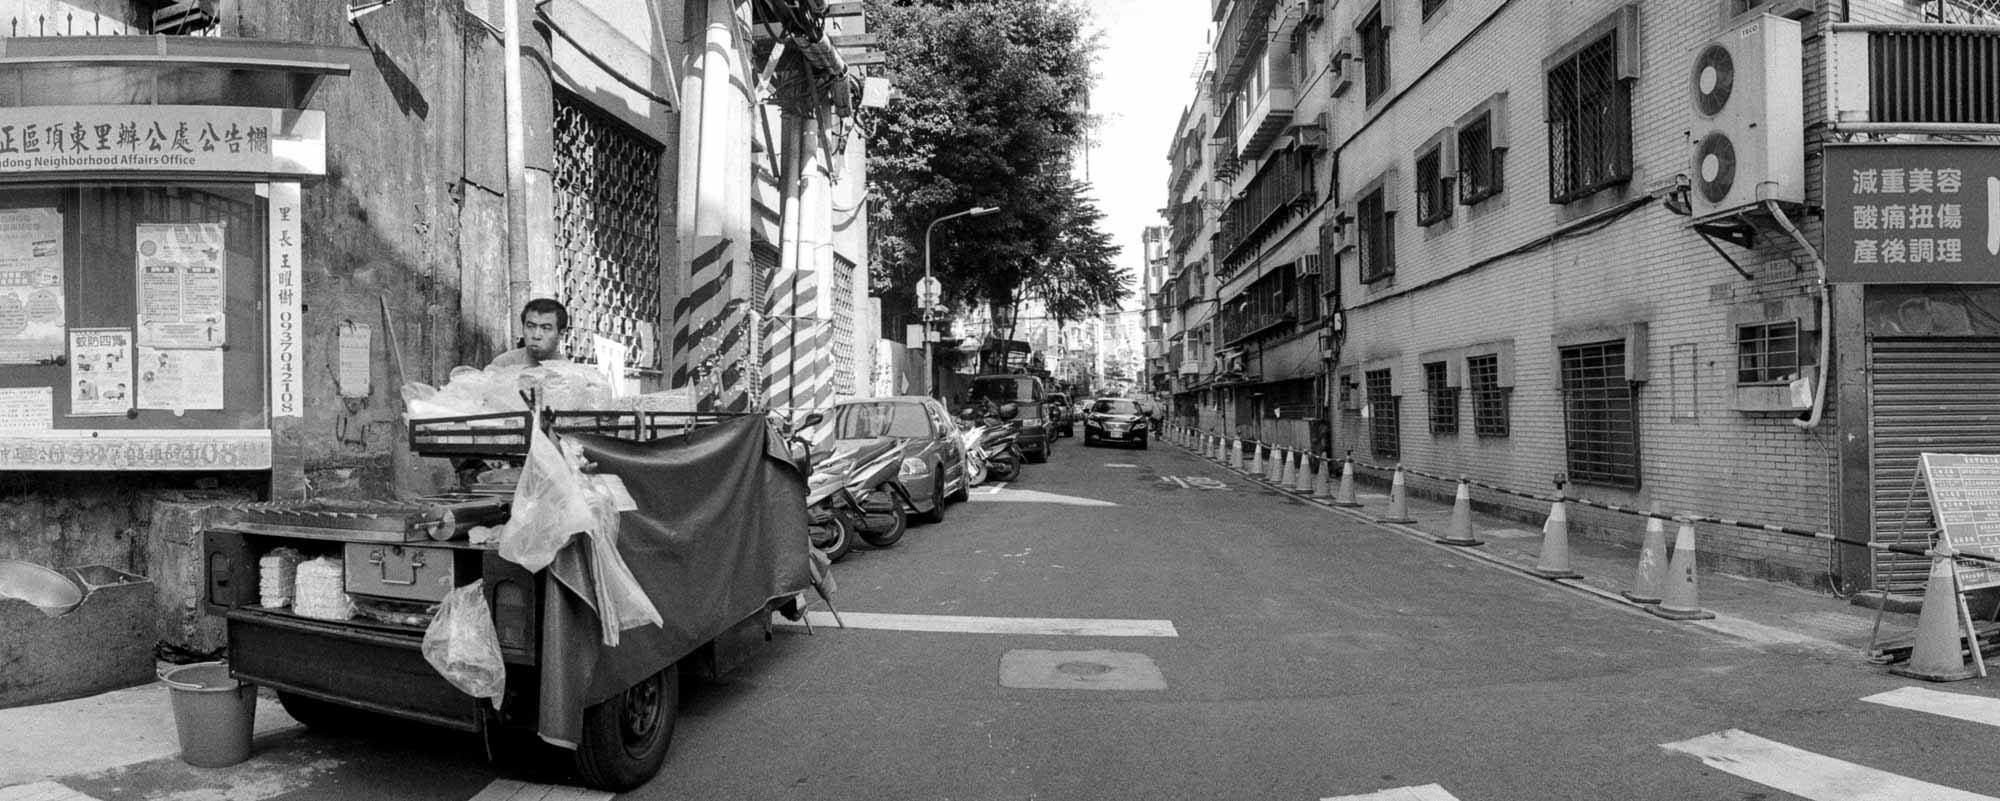 Hungry work - Shot on ILFORD Delta 400 Professional at EI 400. Black and white negative film in 35mm format. Horizon S3 Pro.